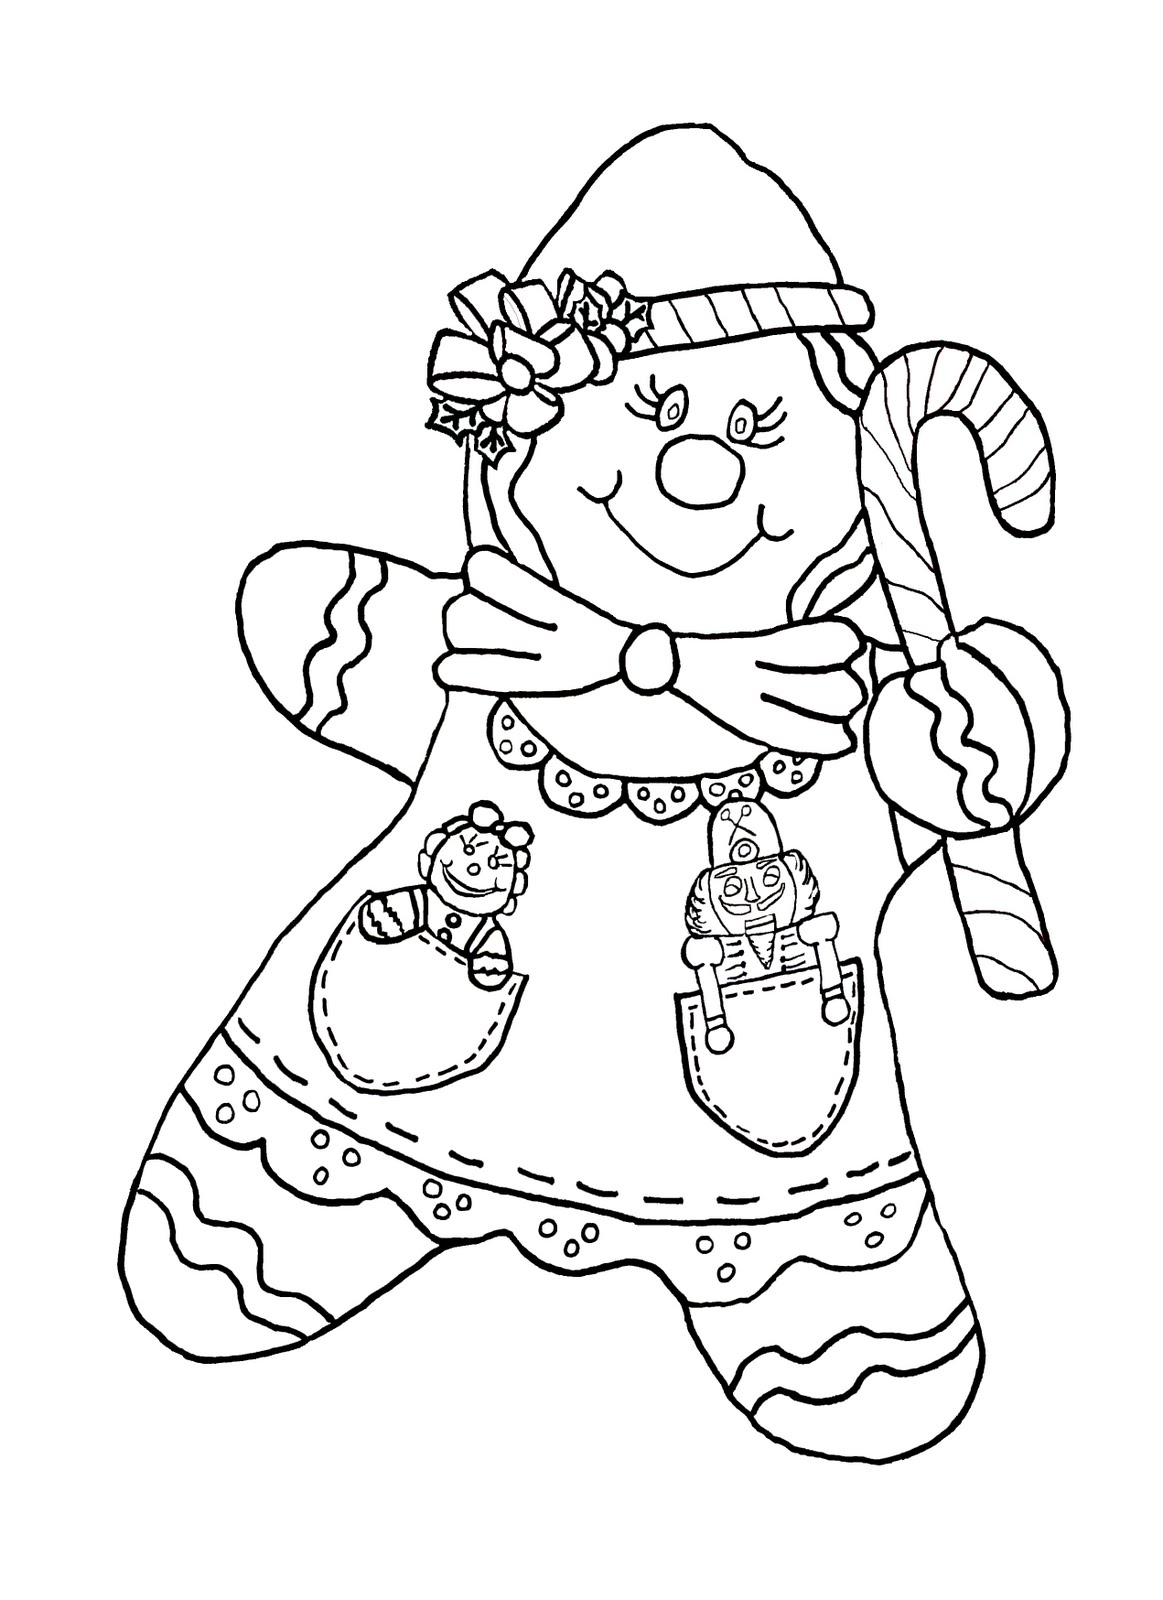 gingerman coloring pages - photo#42